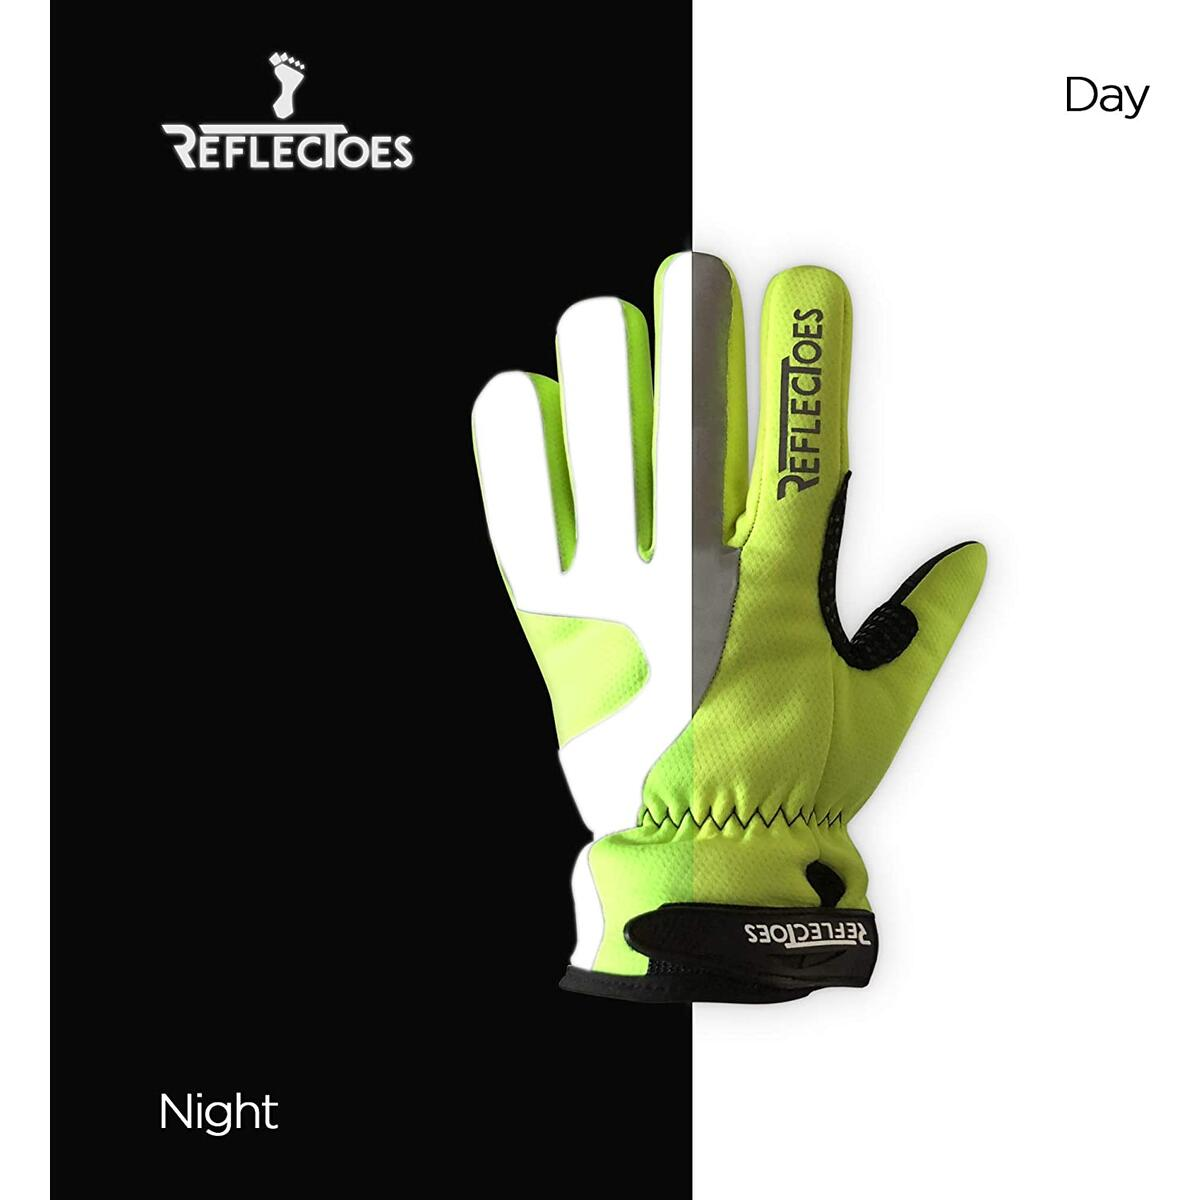 ReflecToes Fluorescent Reflective Gloves - High Viz for Cycling, Running, Walking, Winter Bike Rides, Cold Weather Training and Outdoor Sports. Waterproof Design for Men & Women